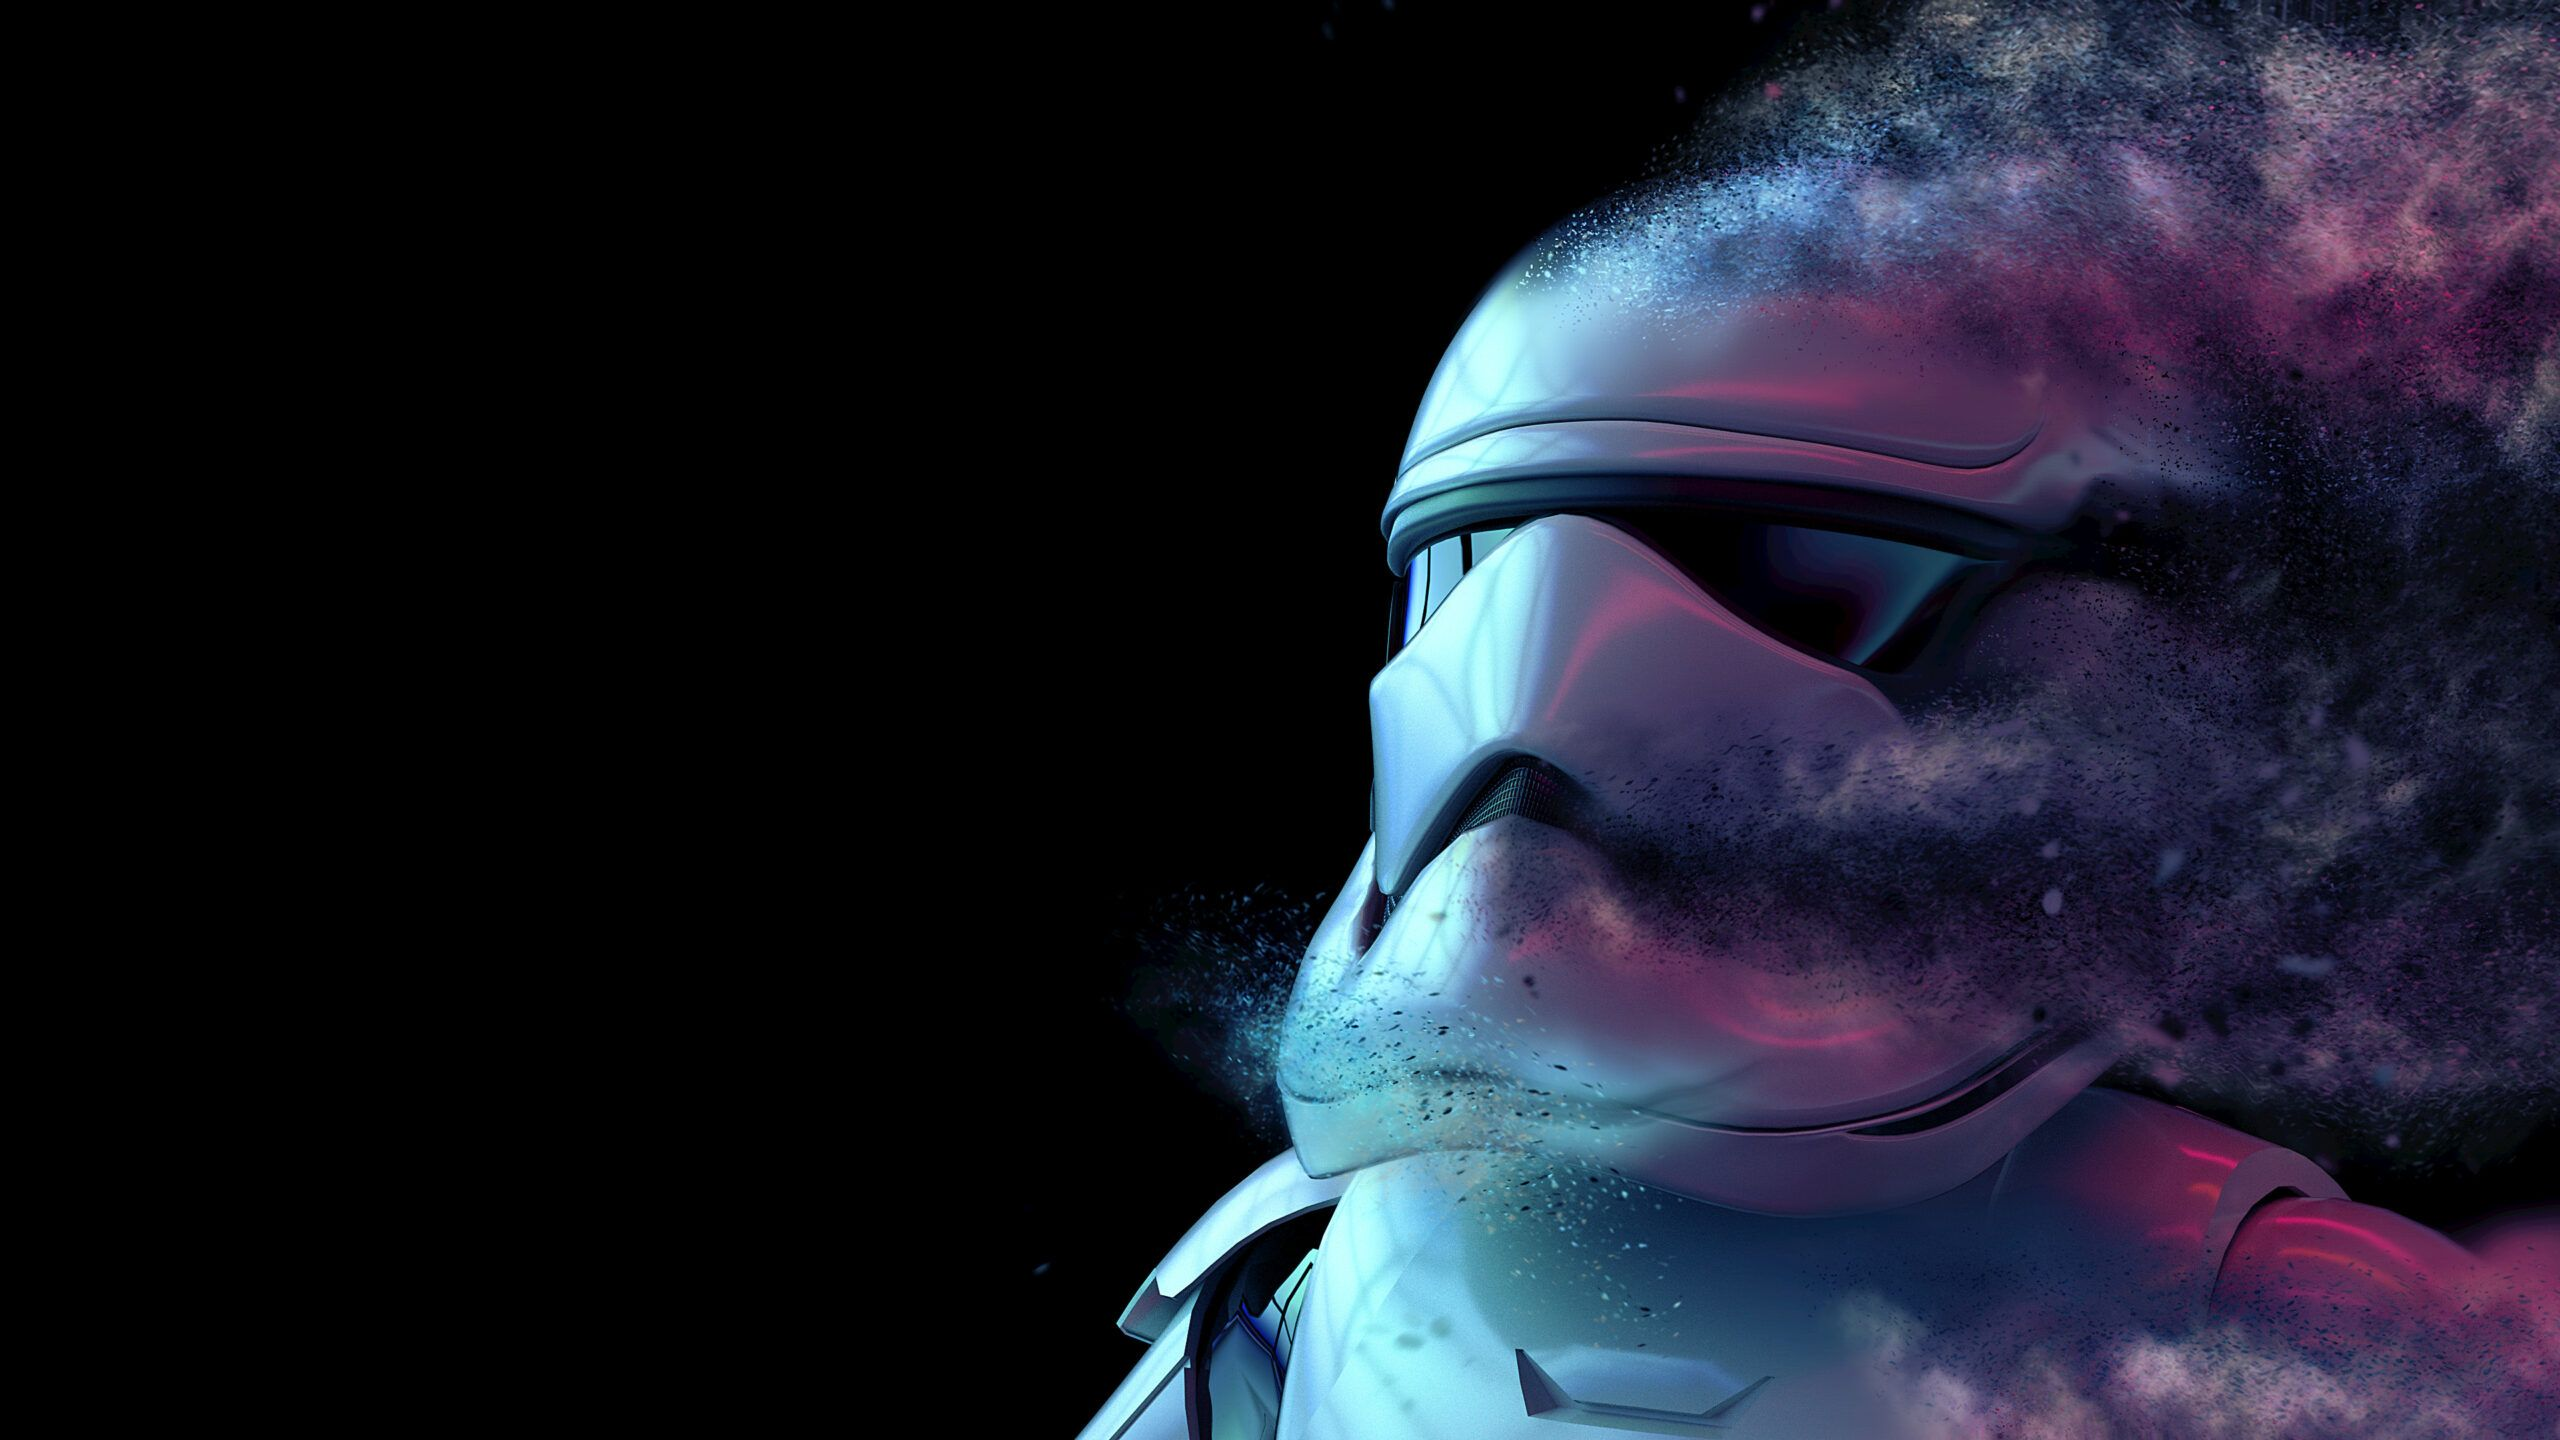 Best Of Wallpaper Stormtrooper Hd 4k Creative Graphics Star Wars